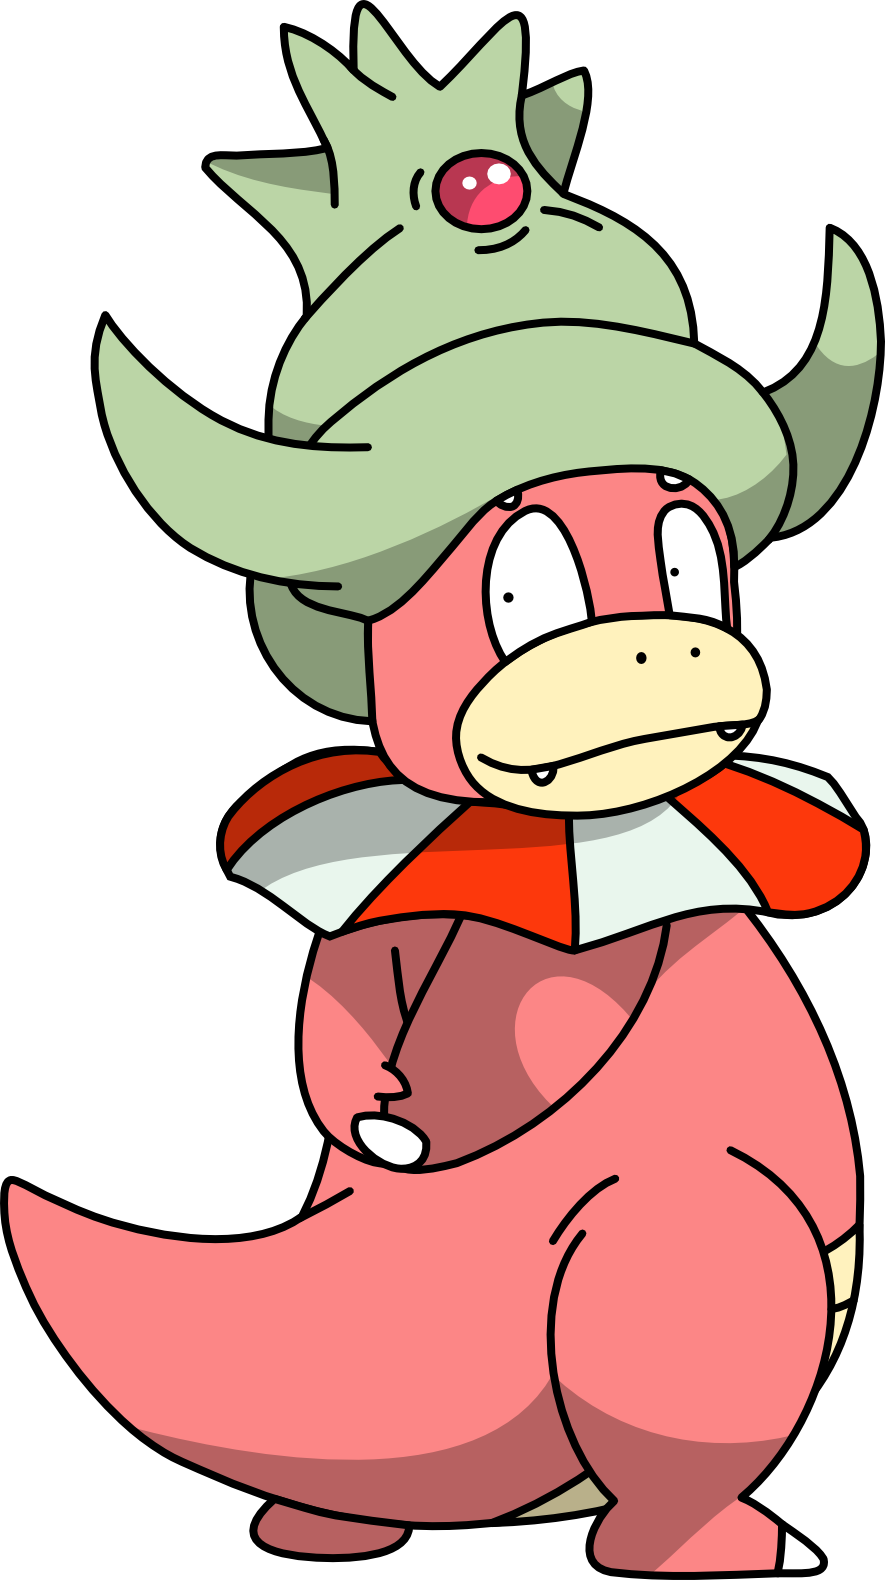 slowking_by_mighty355-d7f7ysd